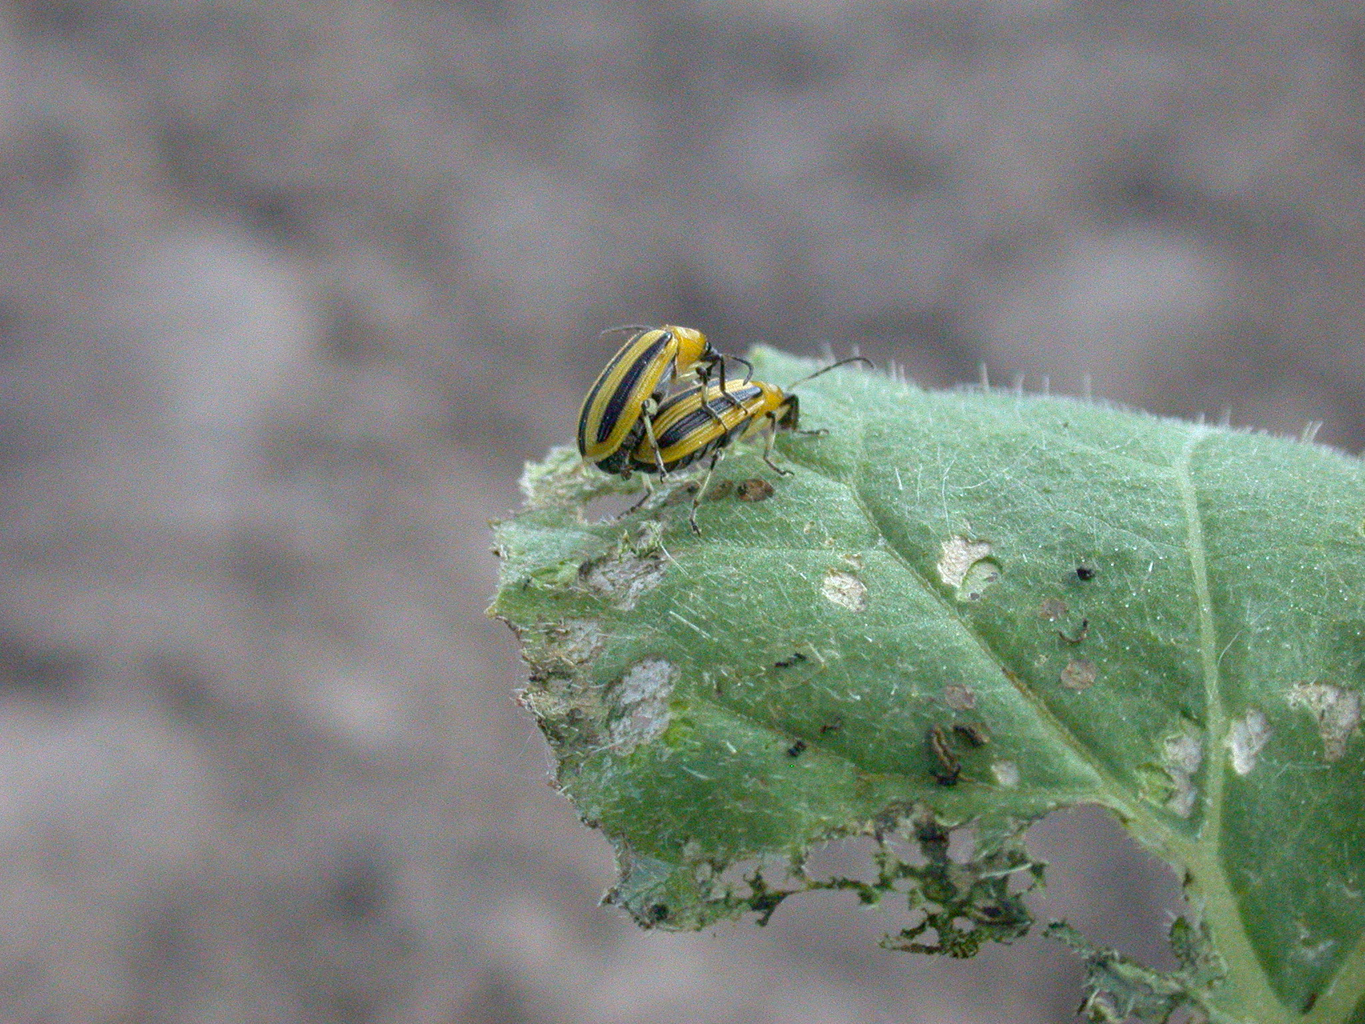 Managing Striped Cucumber Beetles On Cantaloupe And Watermelon Yes i can because cantaloupe can either be plant;animal and fungi which where eaten by human being. striped cucumber beetles on cantaloupe